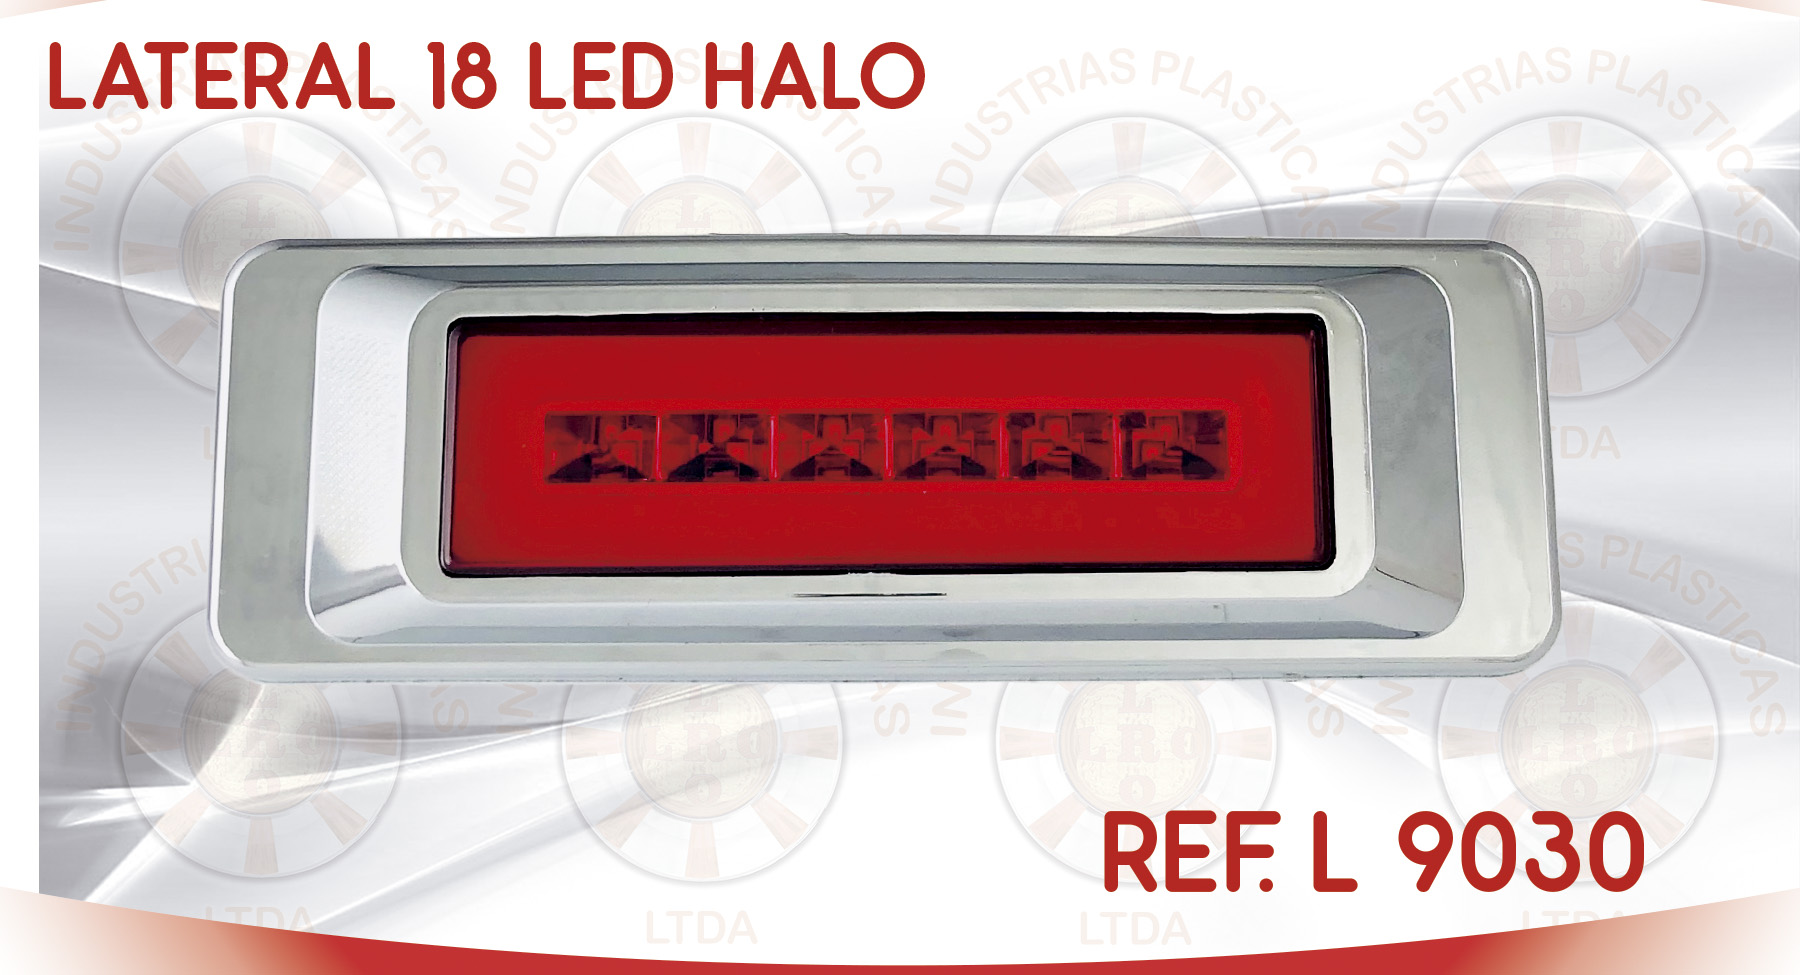 L 9030 LATERAL 18 LED HALO